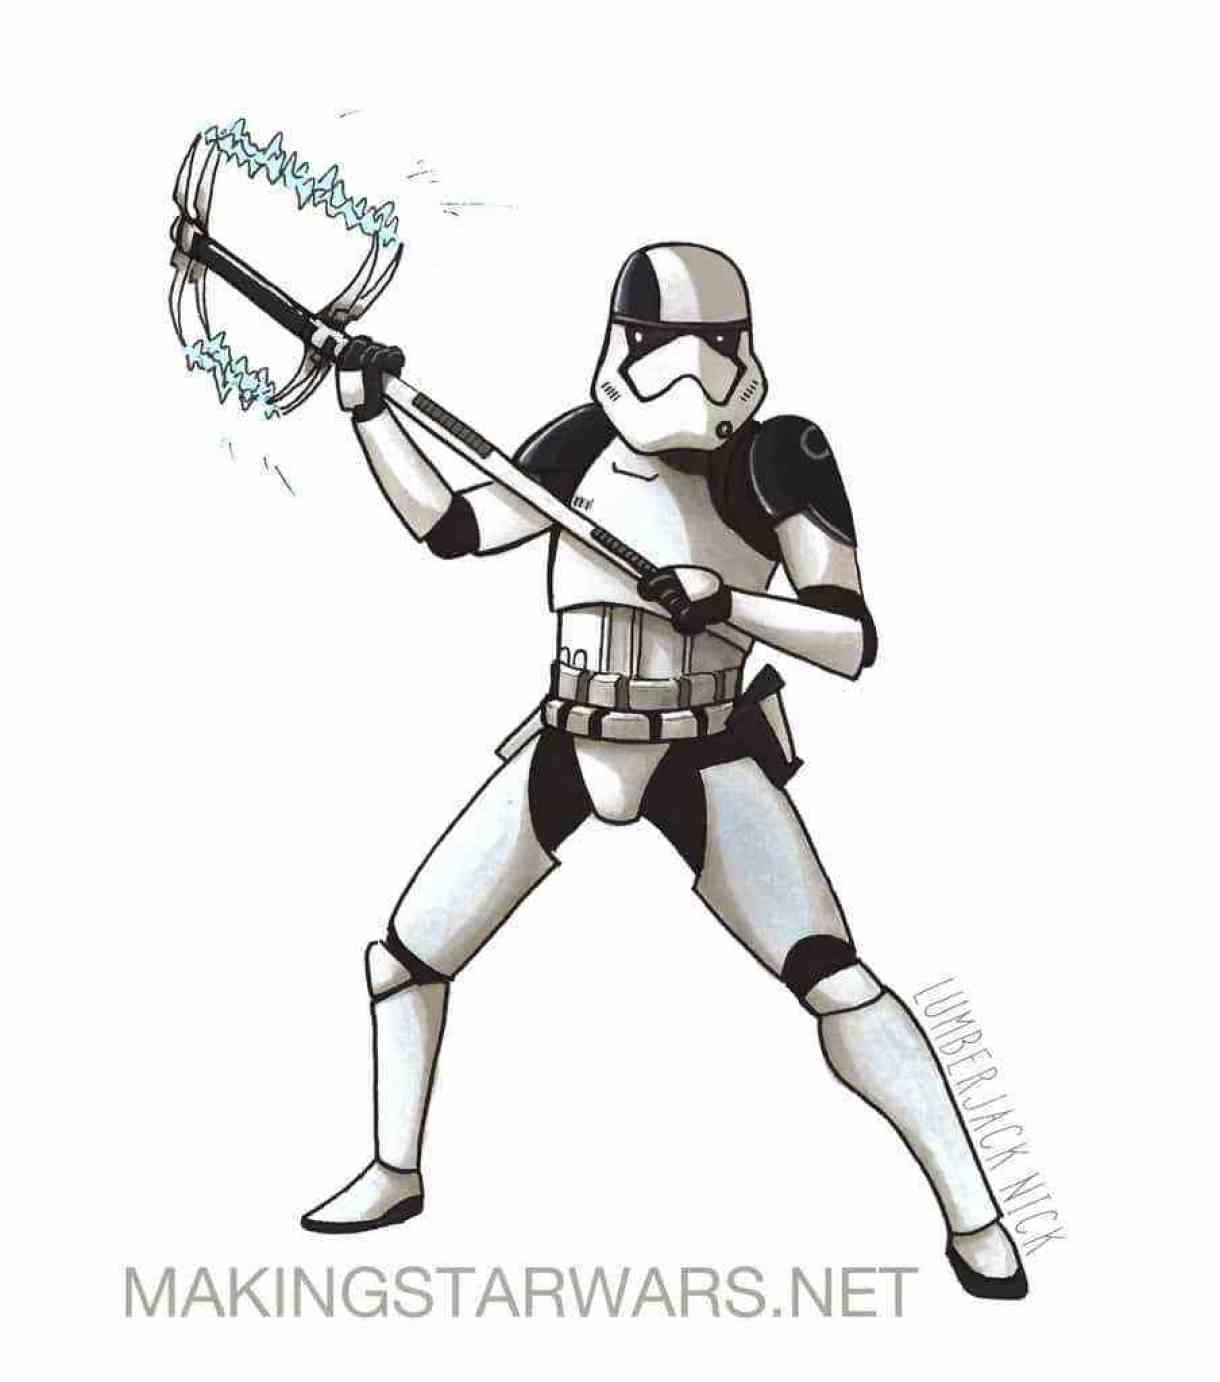 Accurate Captain Phasma, Executioner Stormtroopers, and Kylo Ren Star Wars: The Last Jedi character sketches